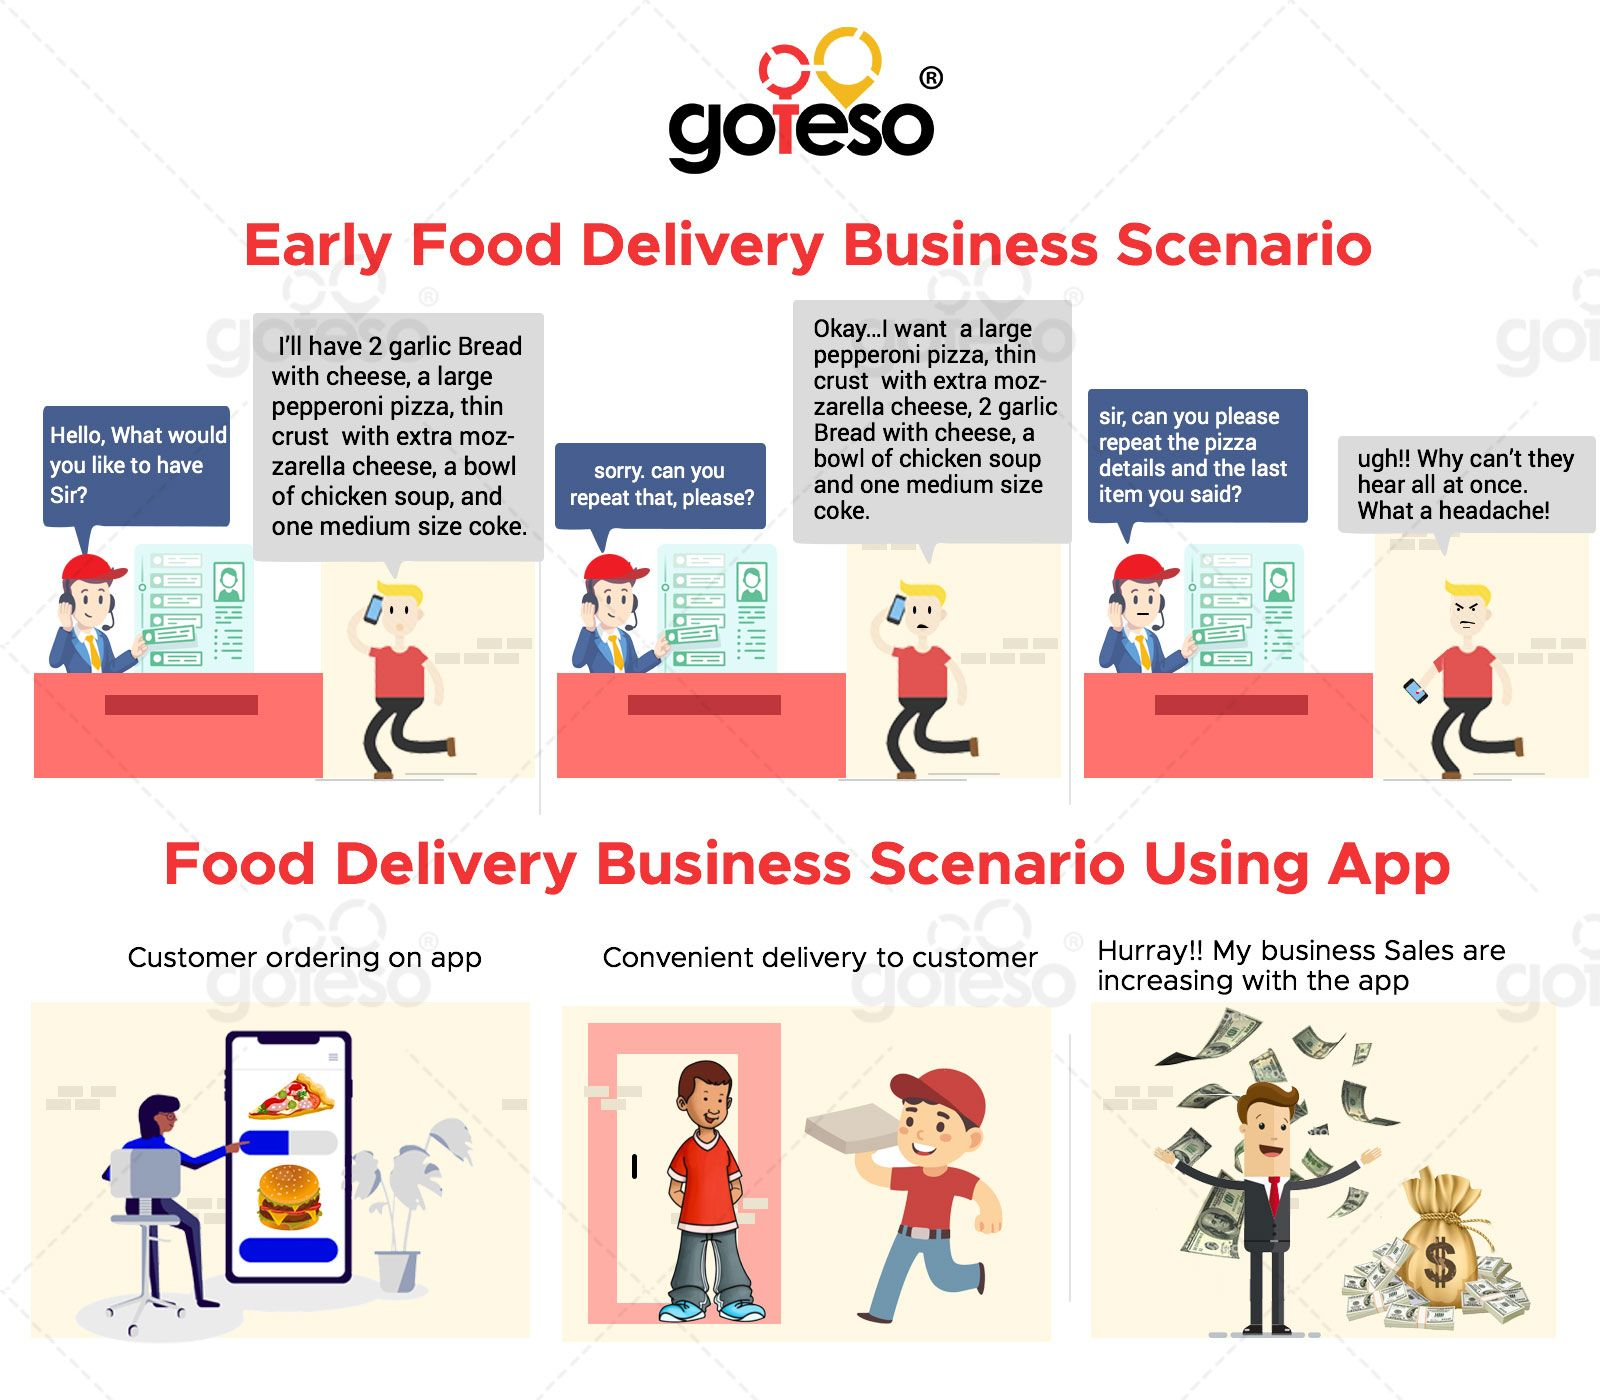 Boost your #food delivery business sales by investing in an online